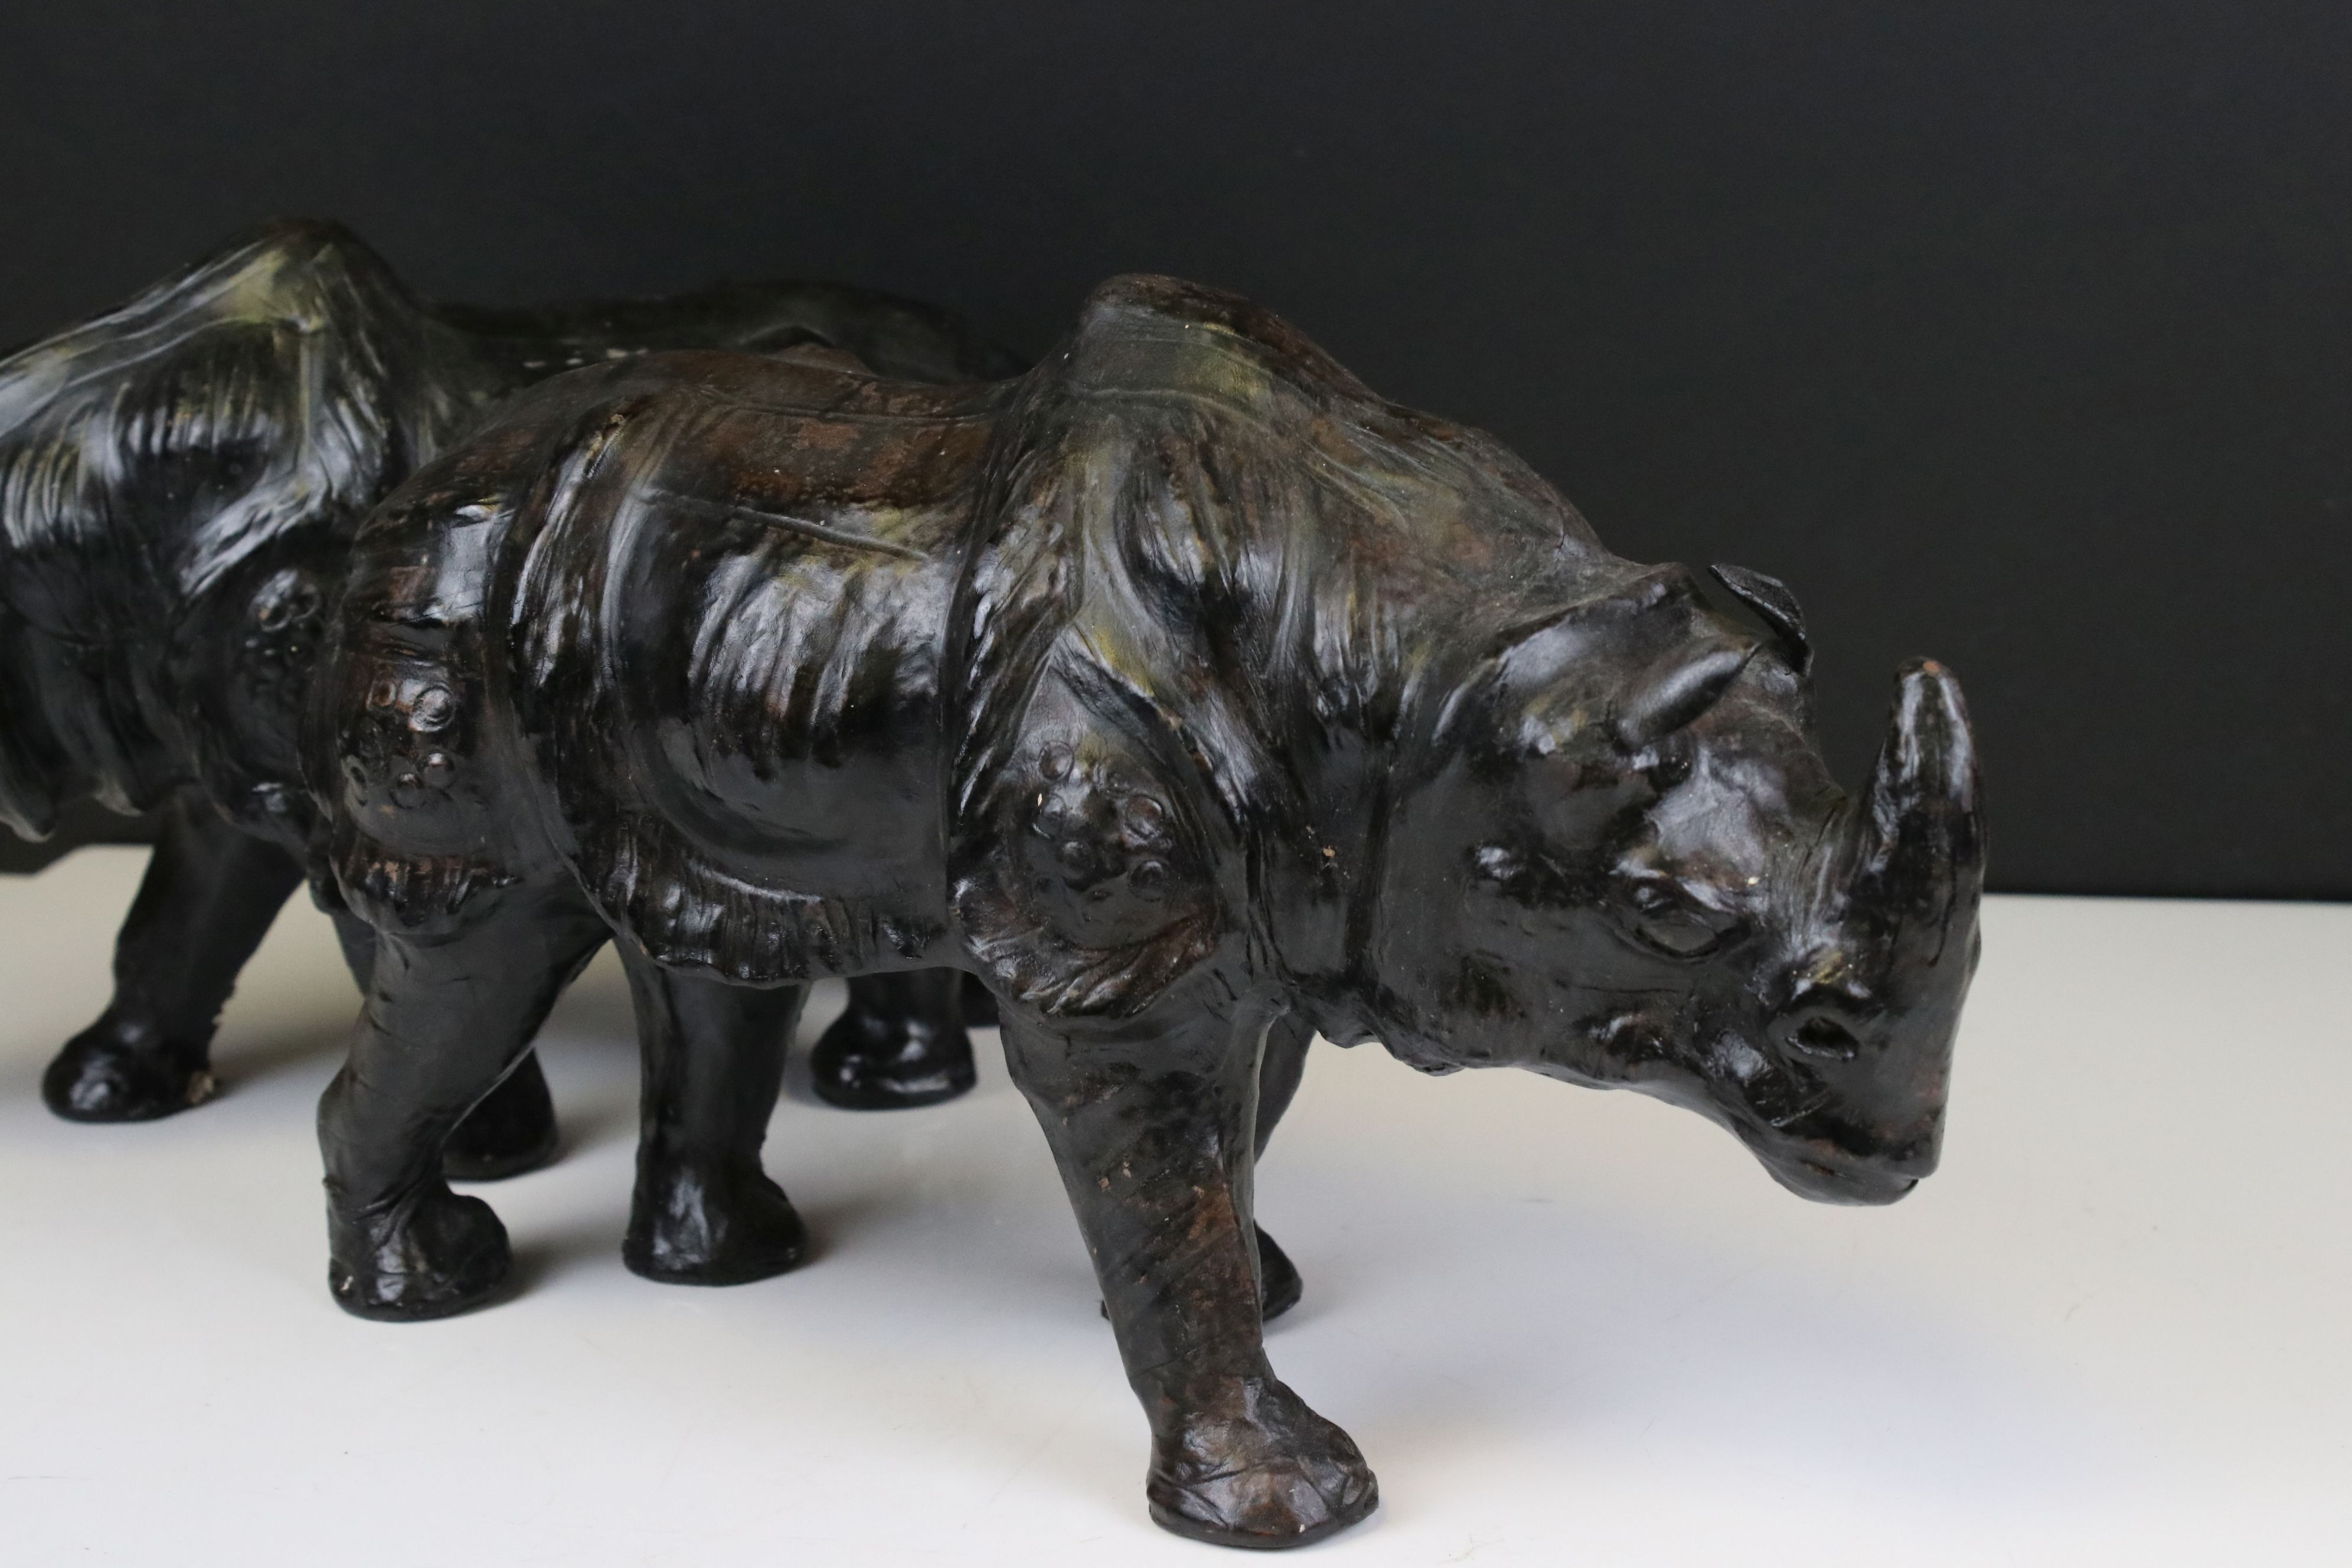 Pair of Leather covered models of Rhinoceros, 19cms high - Image 2 of 7